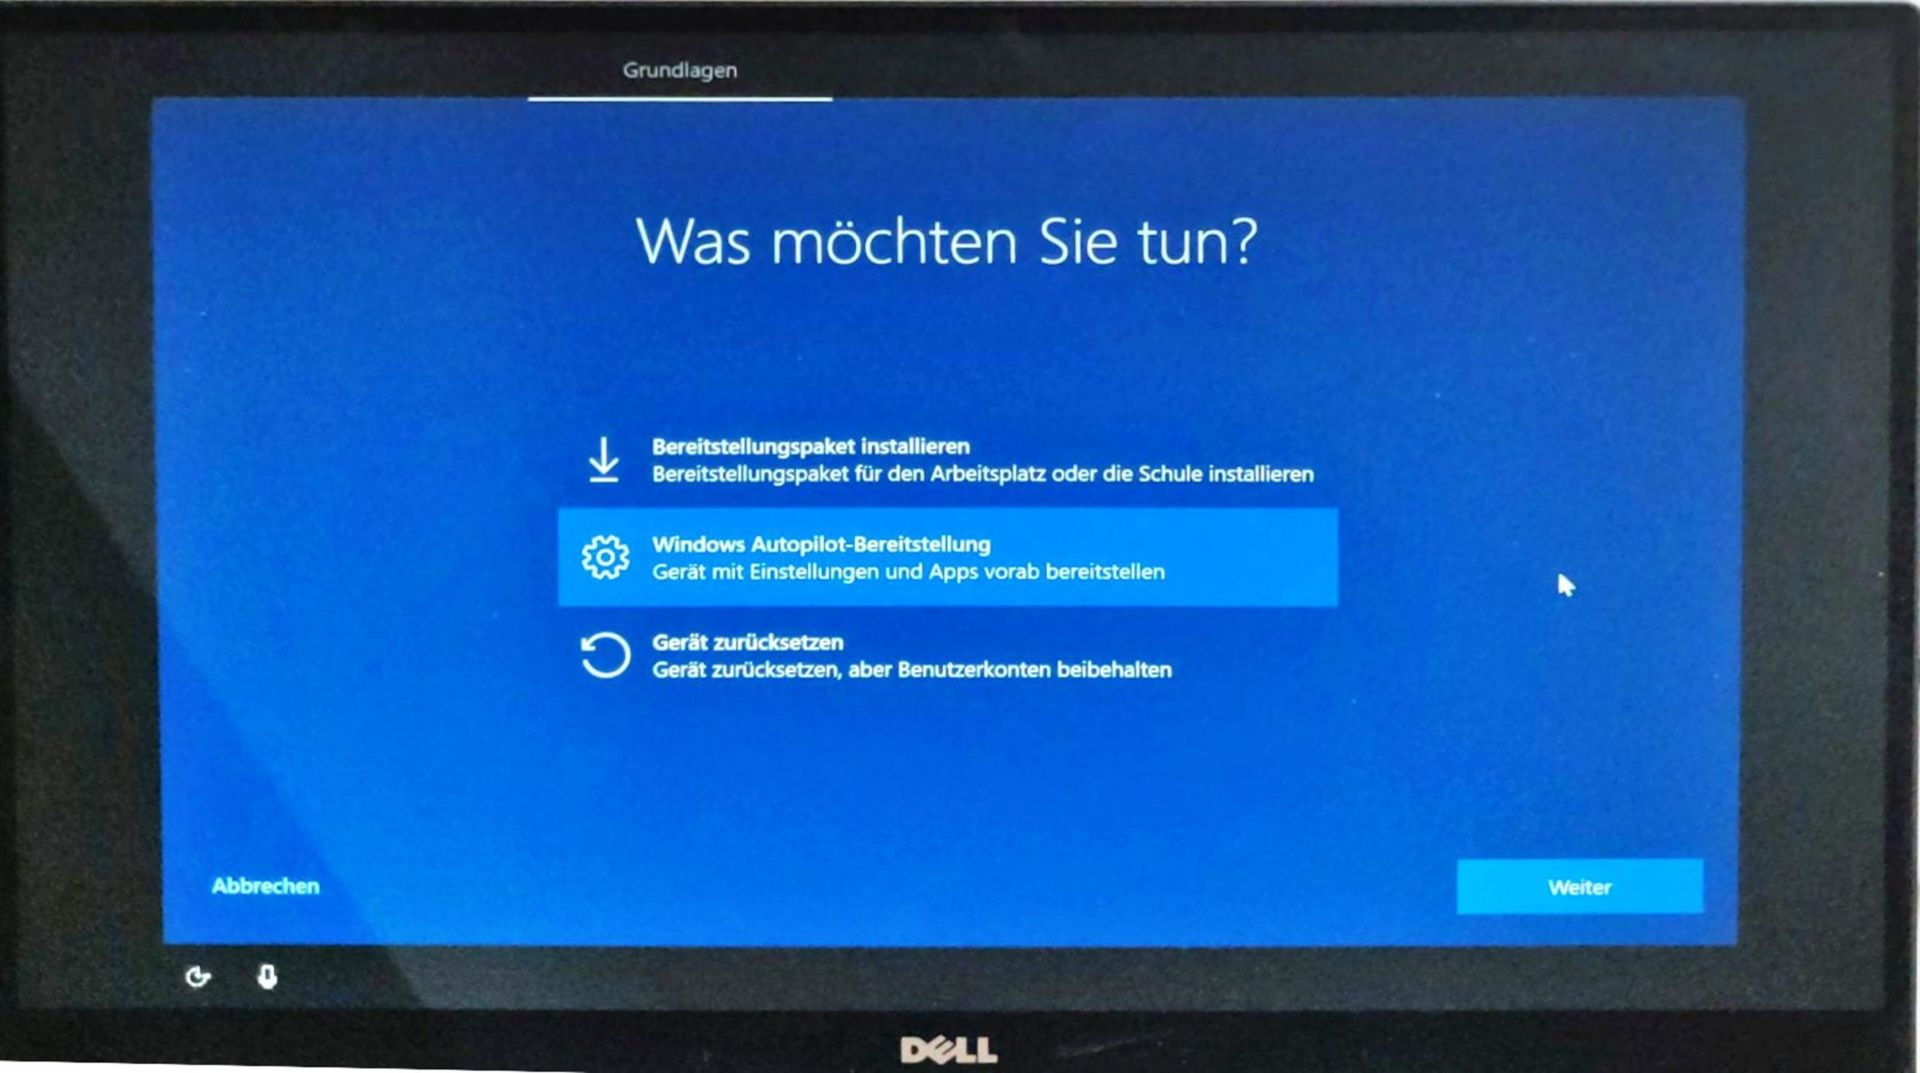 062519 0830 NeuesbeiAut6 New for Autopilot with Windows 10 1903 (Updated) 11